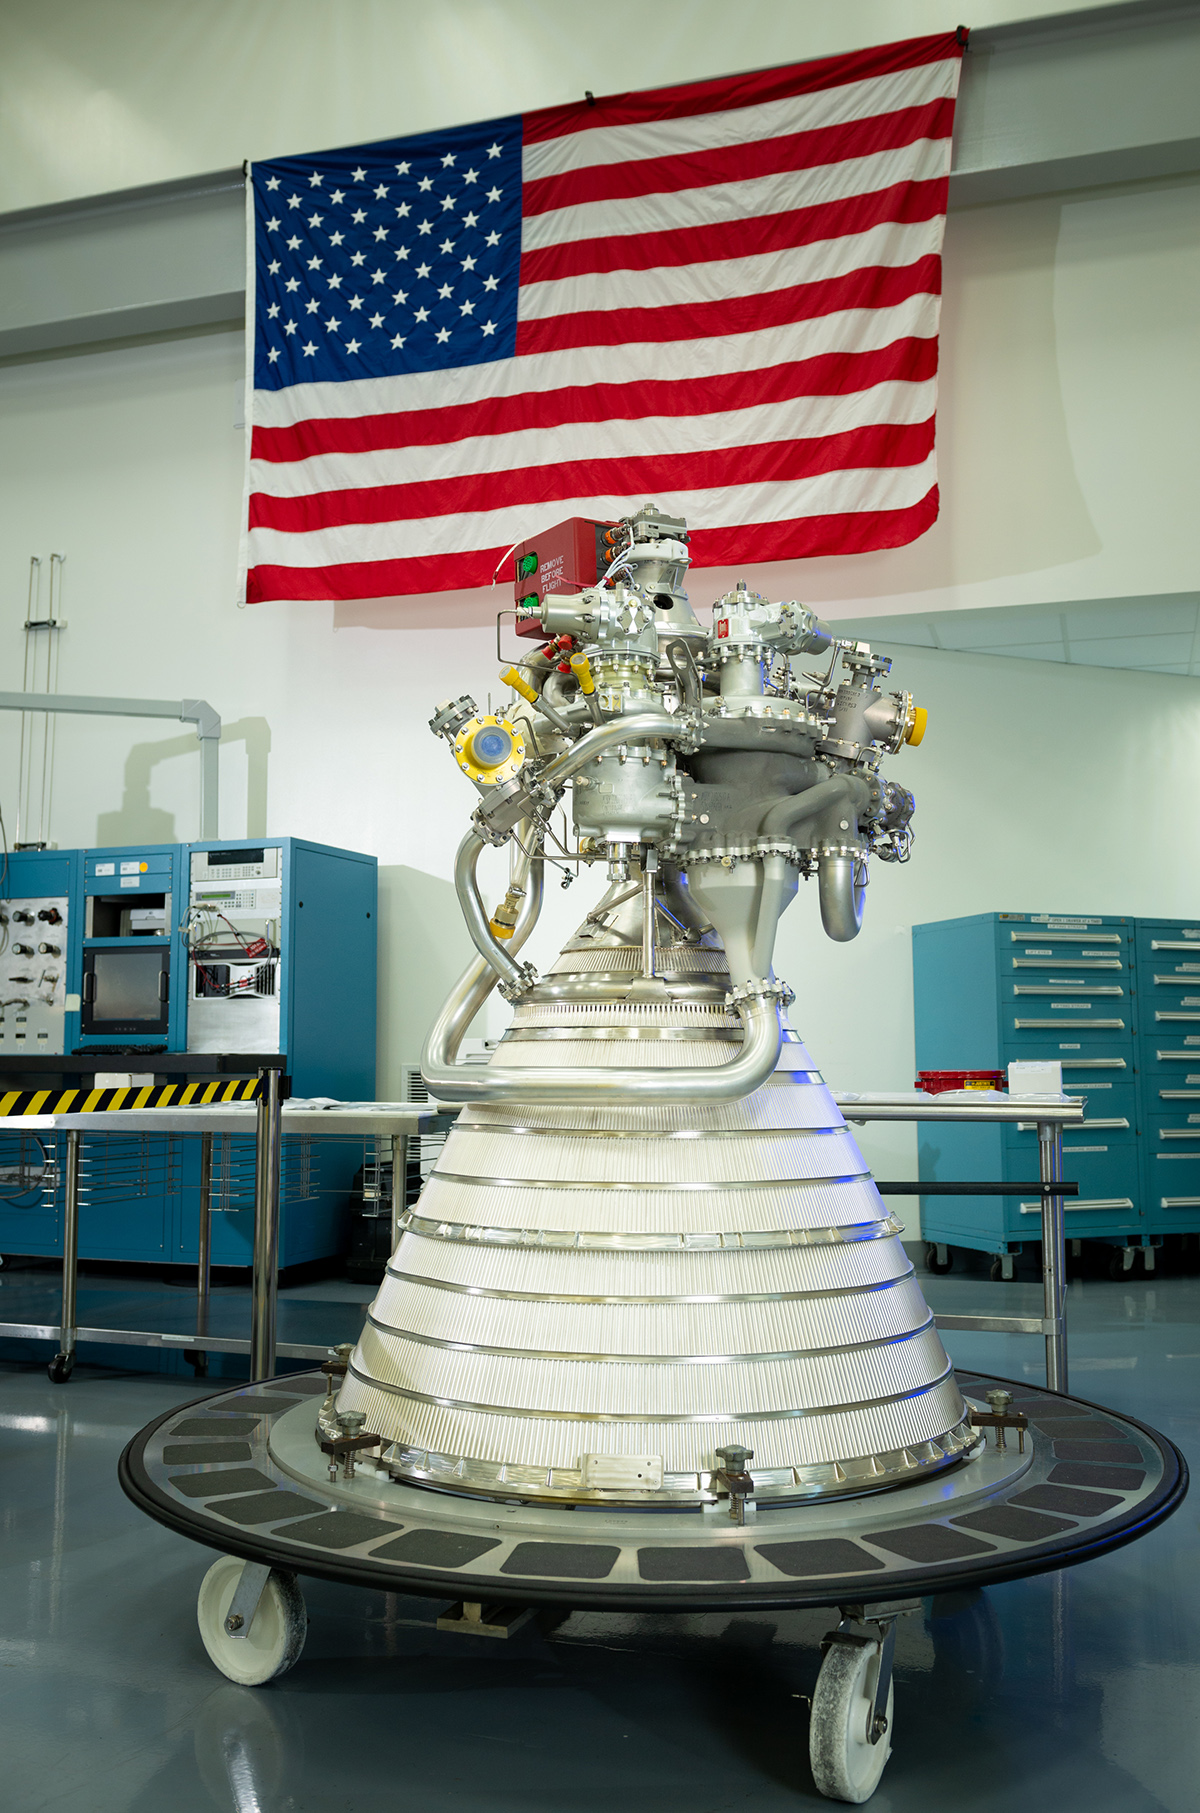 The upper stage engines for OmegA's first flight have been assembled and will soon undergo testing at Aerojet Rocketdyne's facility in West Palm Beach, Florida. (August 2019) Photo credit: Aerojet Rocketdyne